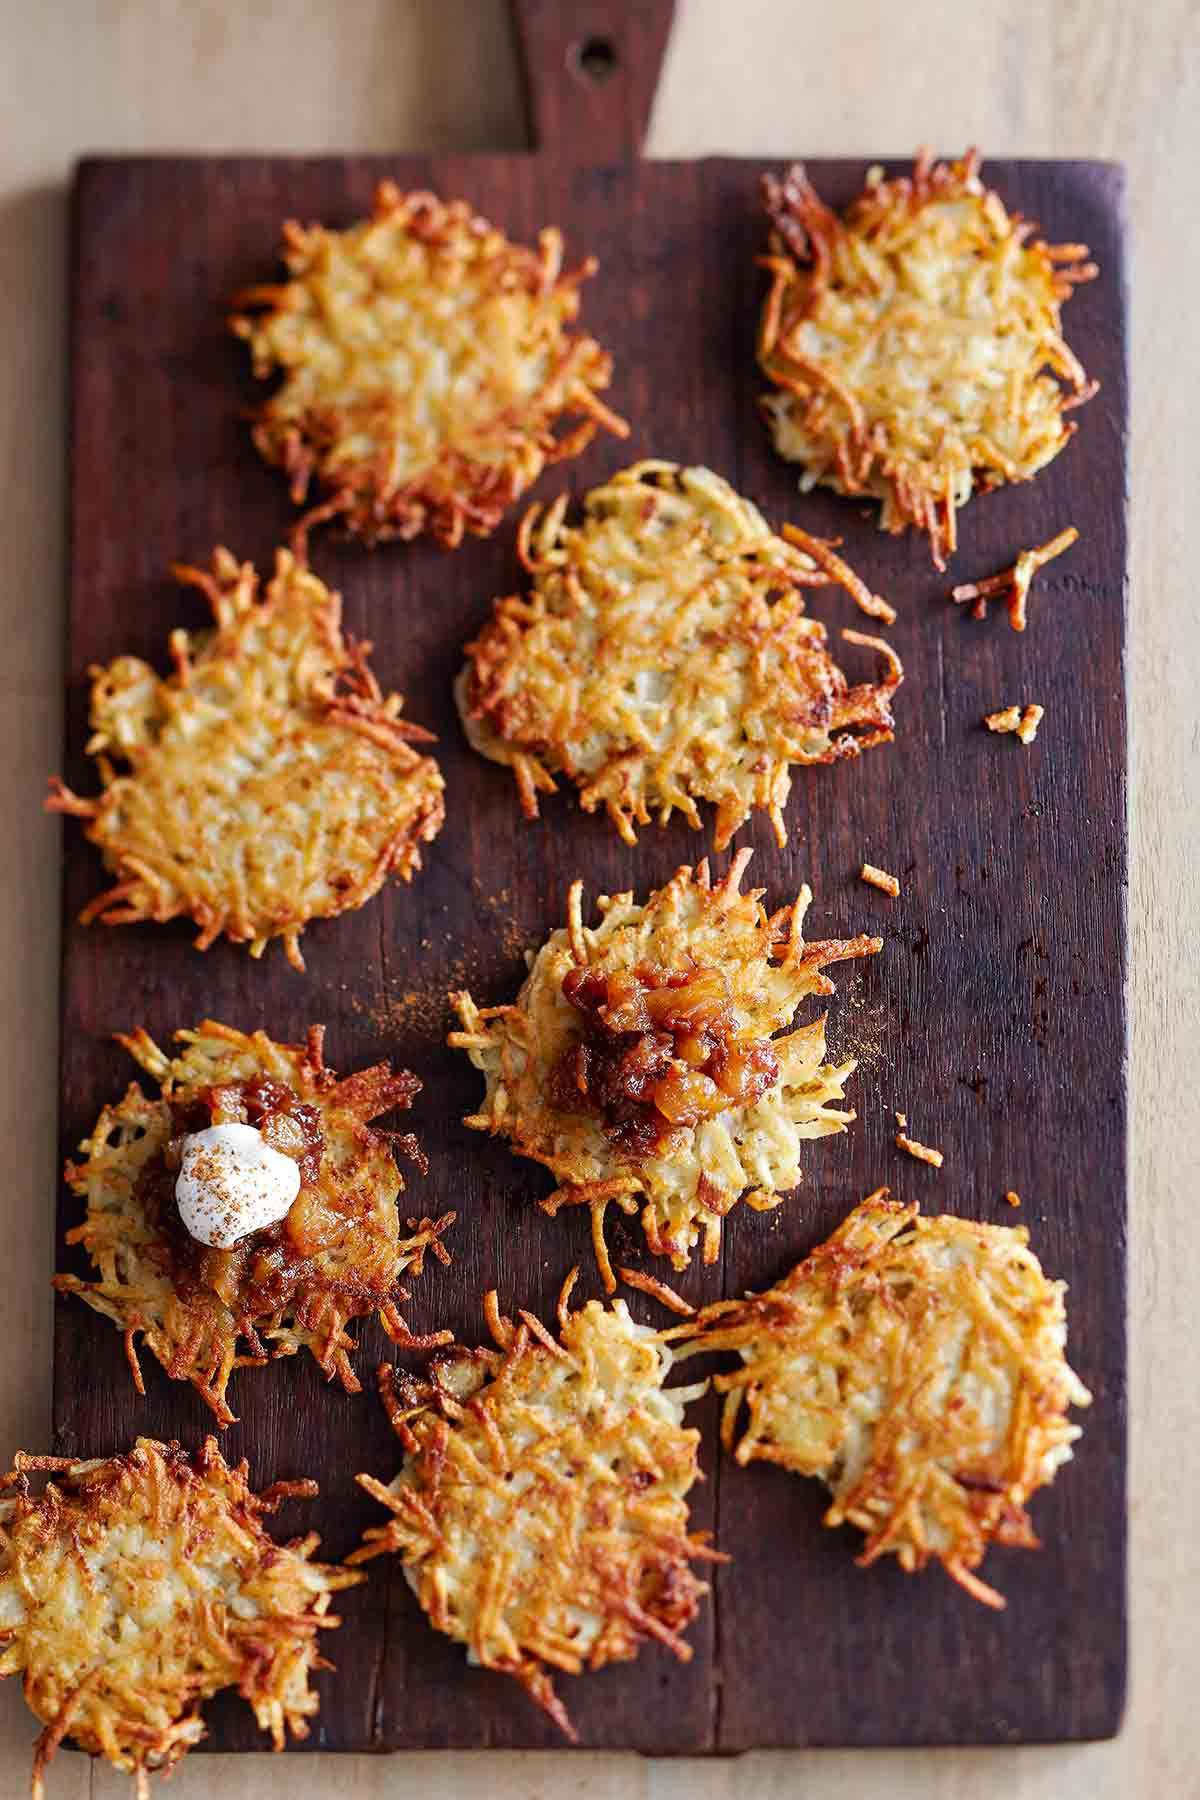 Nine potato latkes with apple-date chutney and cinnamon sour cream on a wooden cutting board.